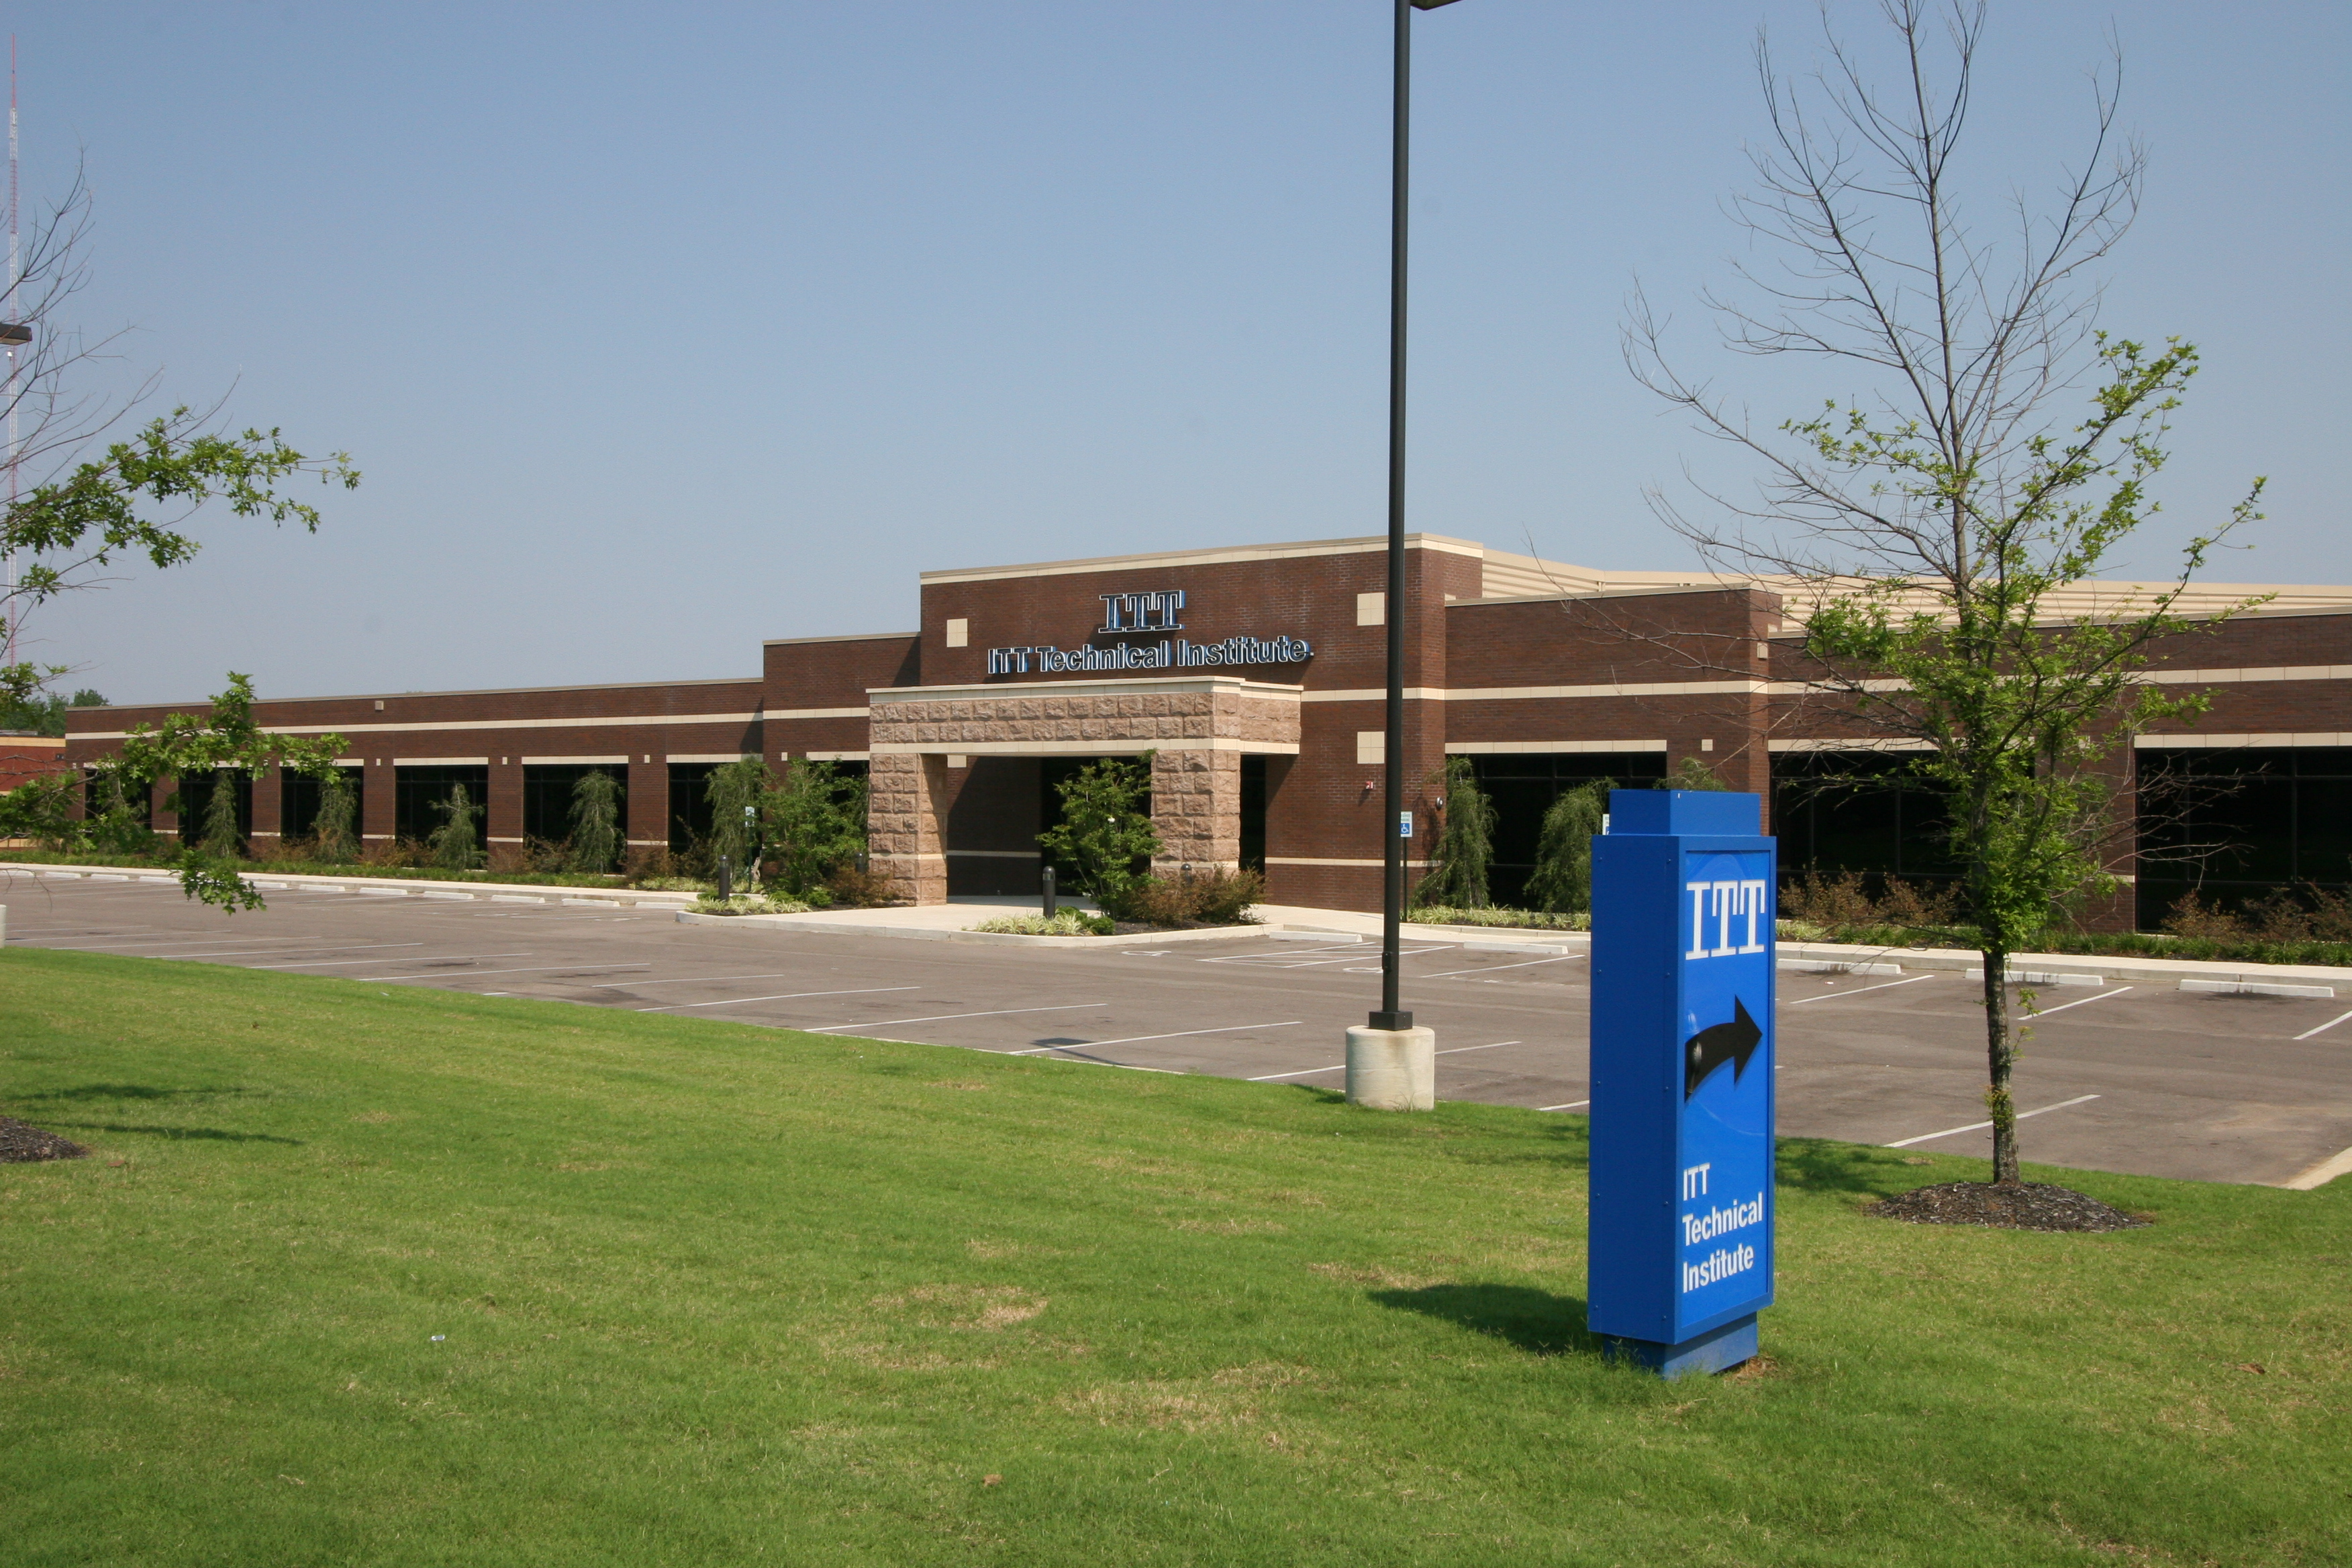 ITT Technical Institute, Educational roofing and construction